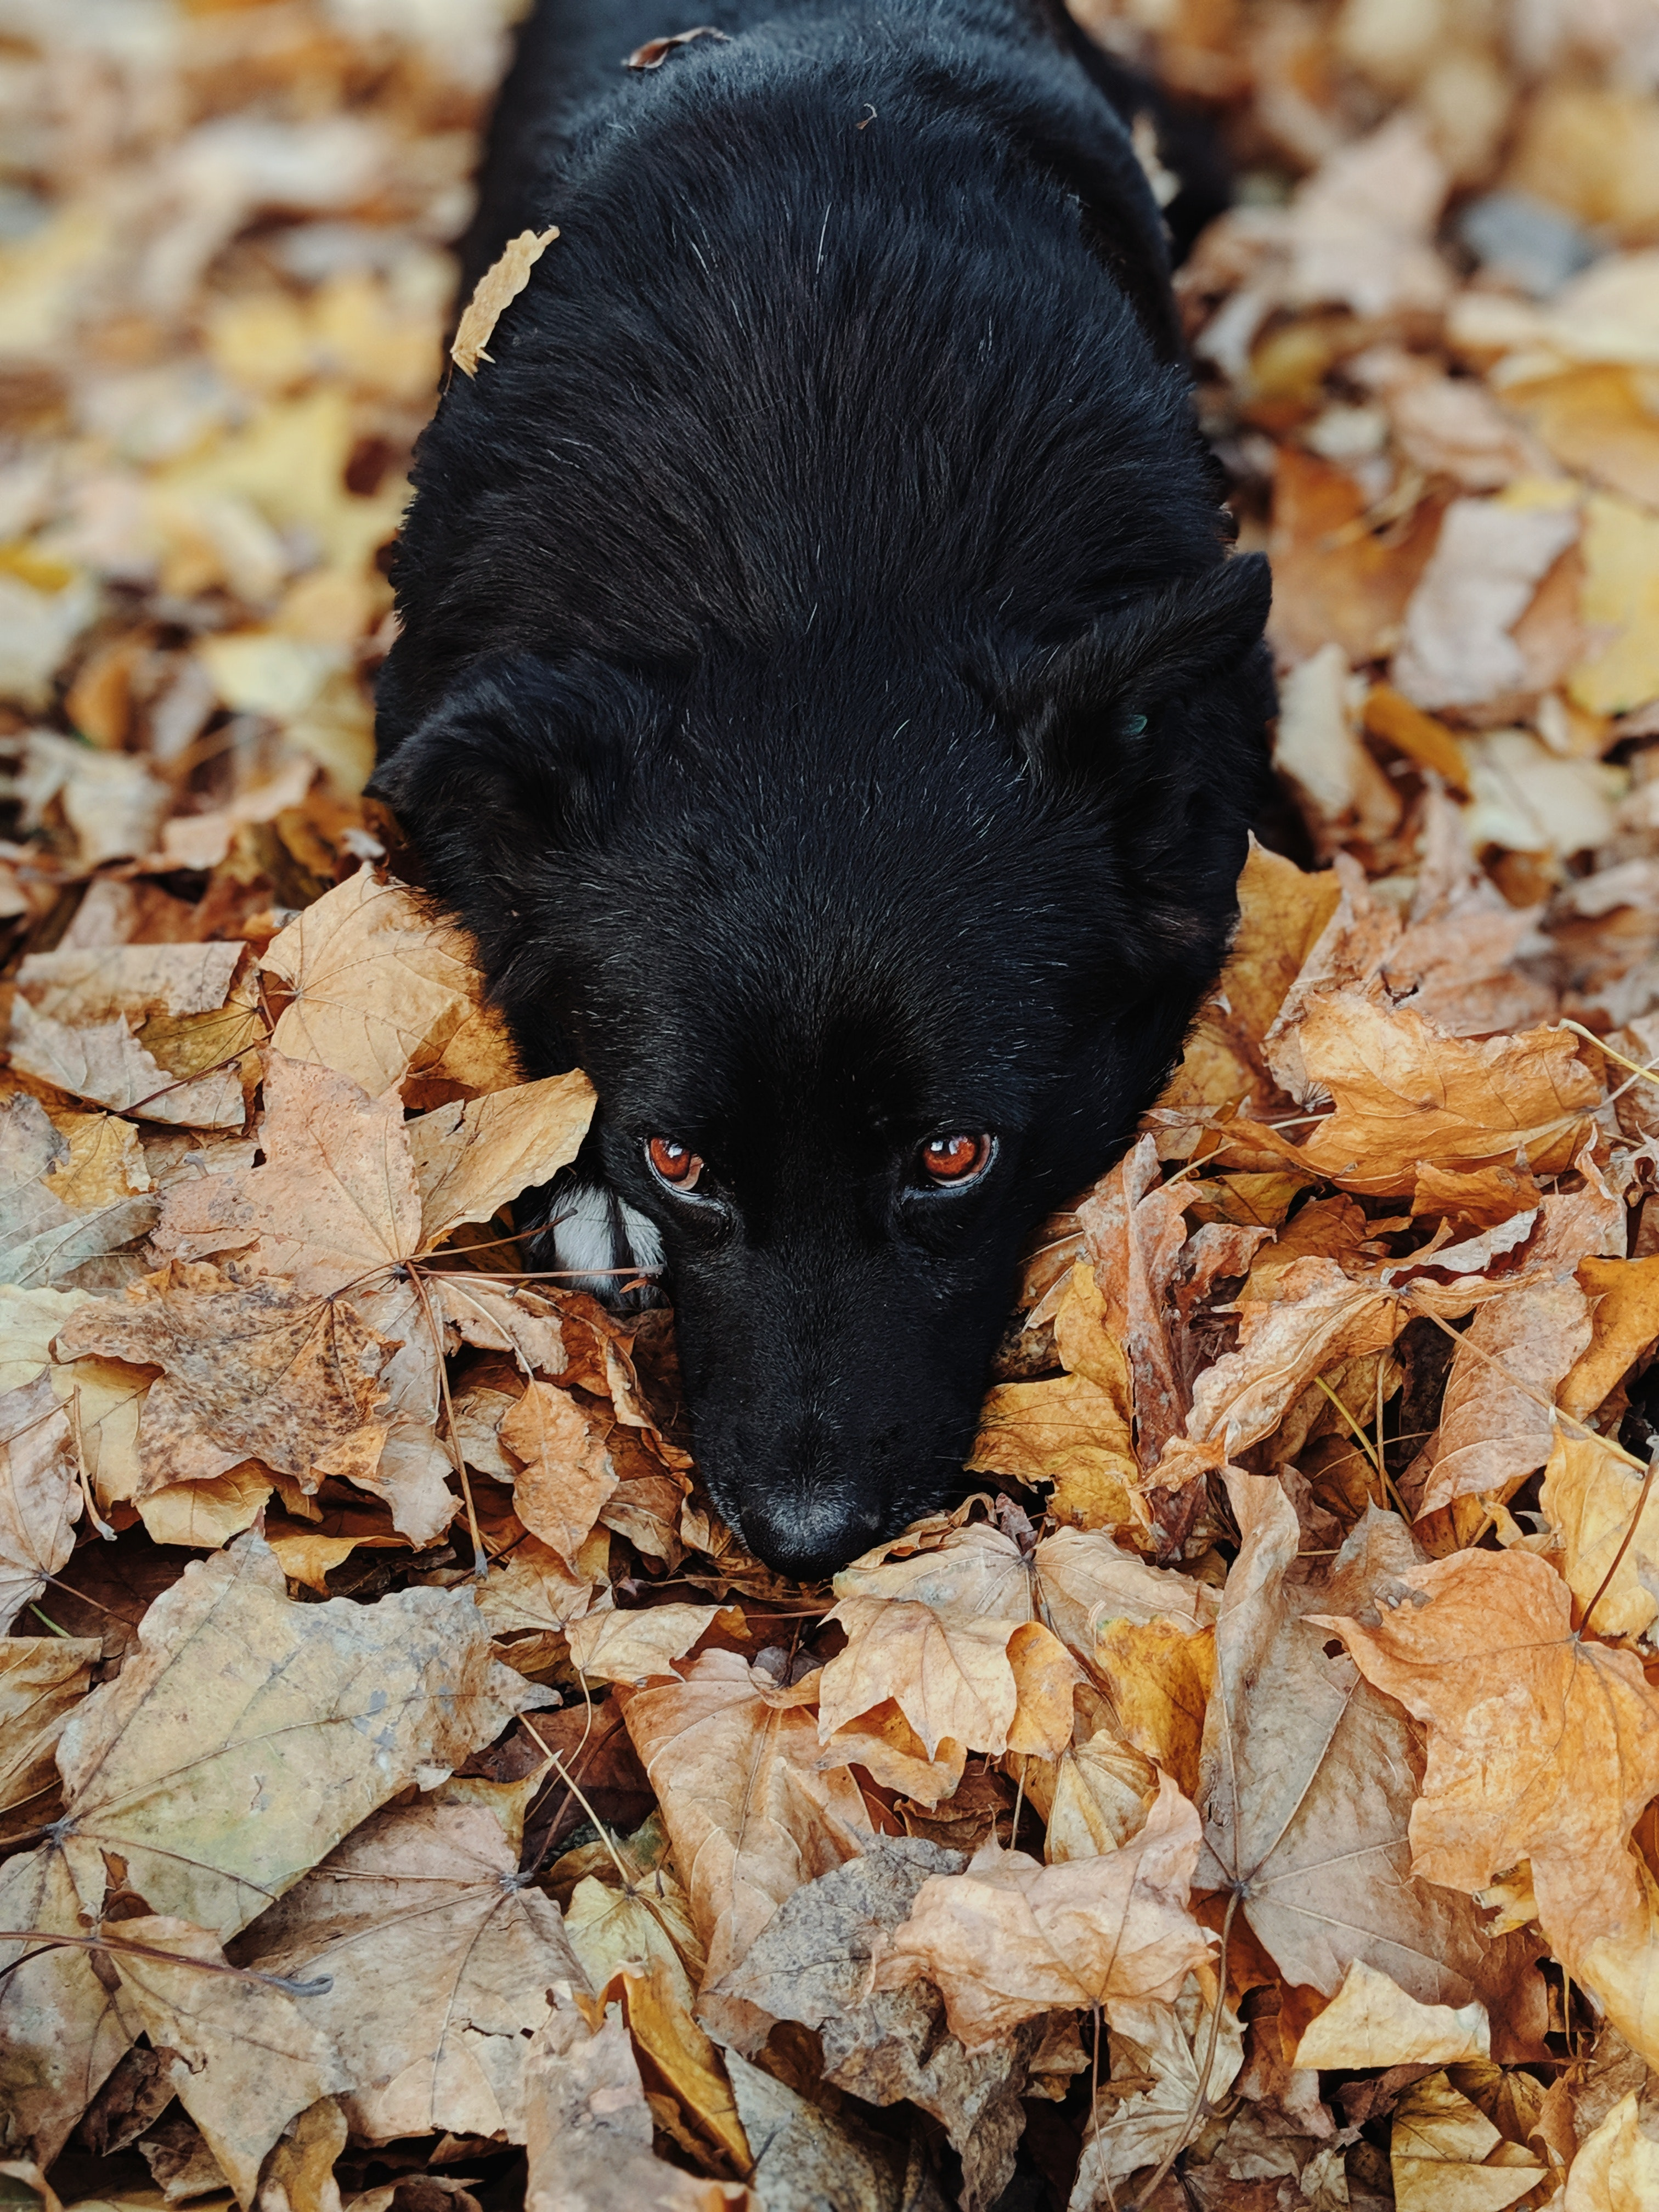 Enjoying the Pleasures of Autumn with Your Pet …Safely!